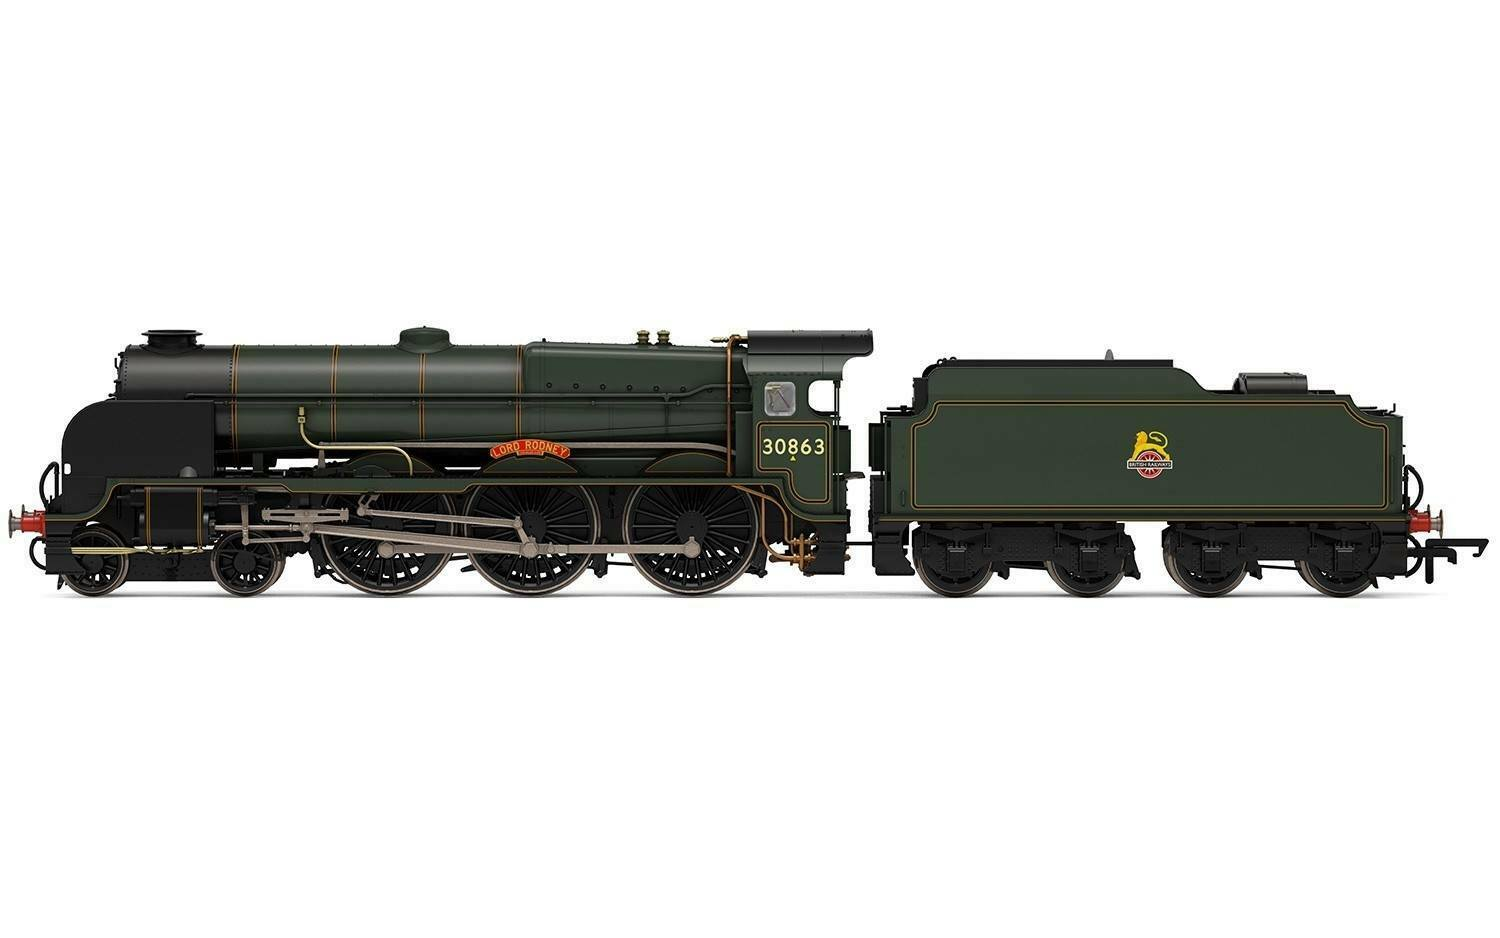 BR (Early) Lord Nelson Class - Lord Rodney 30863 - Hornby R3635 OO Gauge